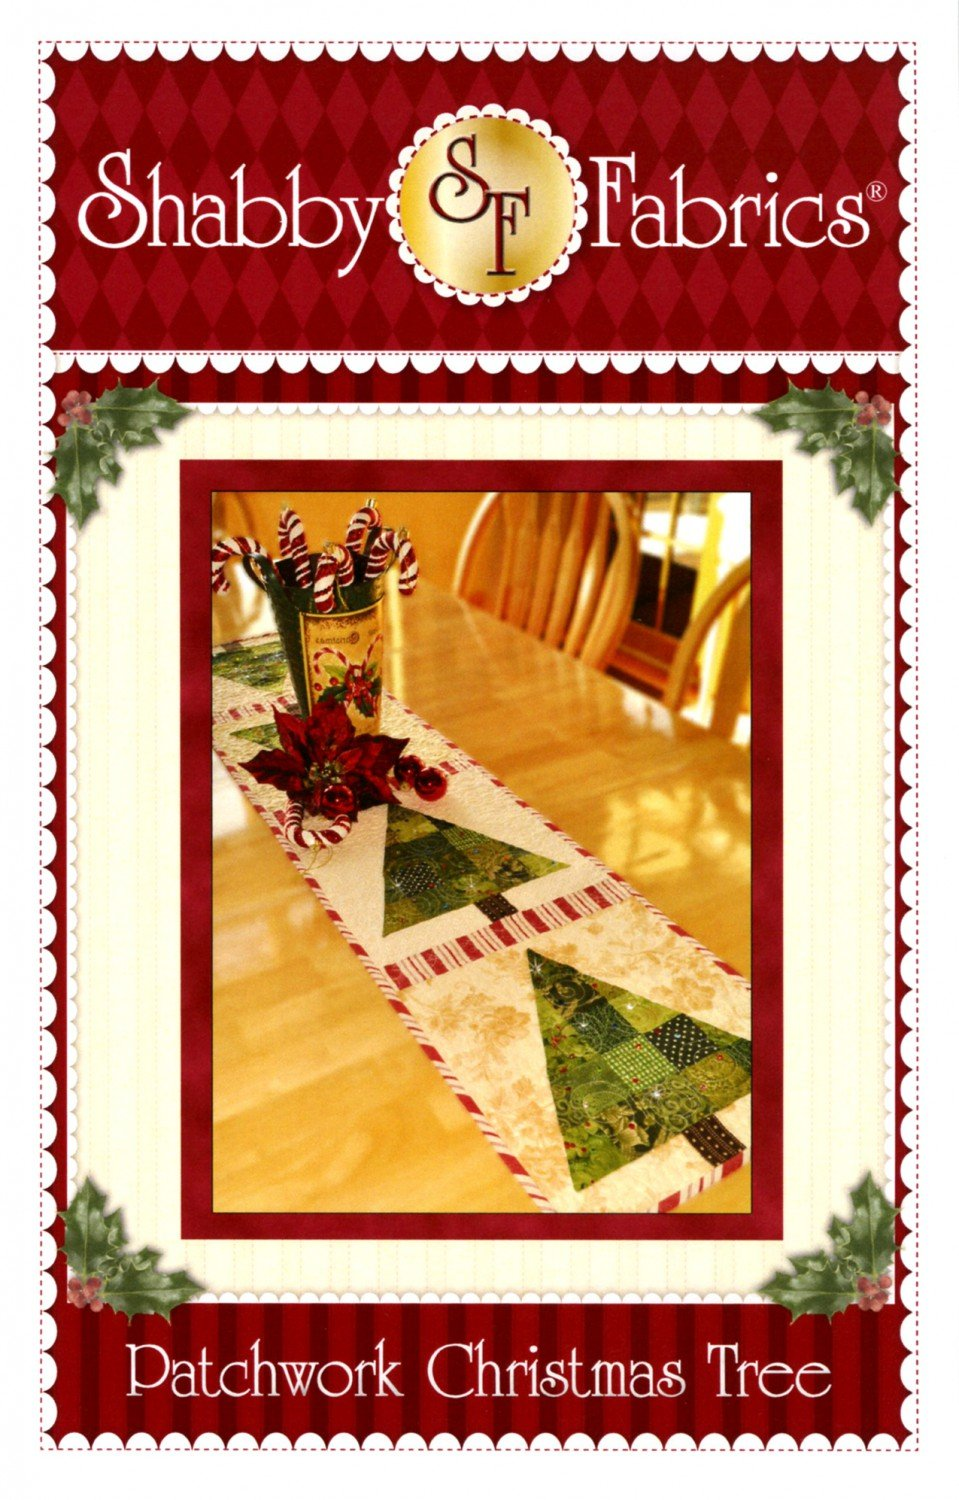 Patchwork Christmas Tree - SF48635